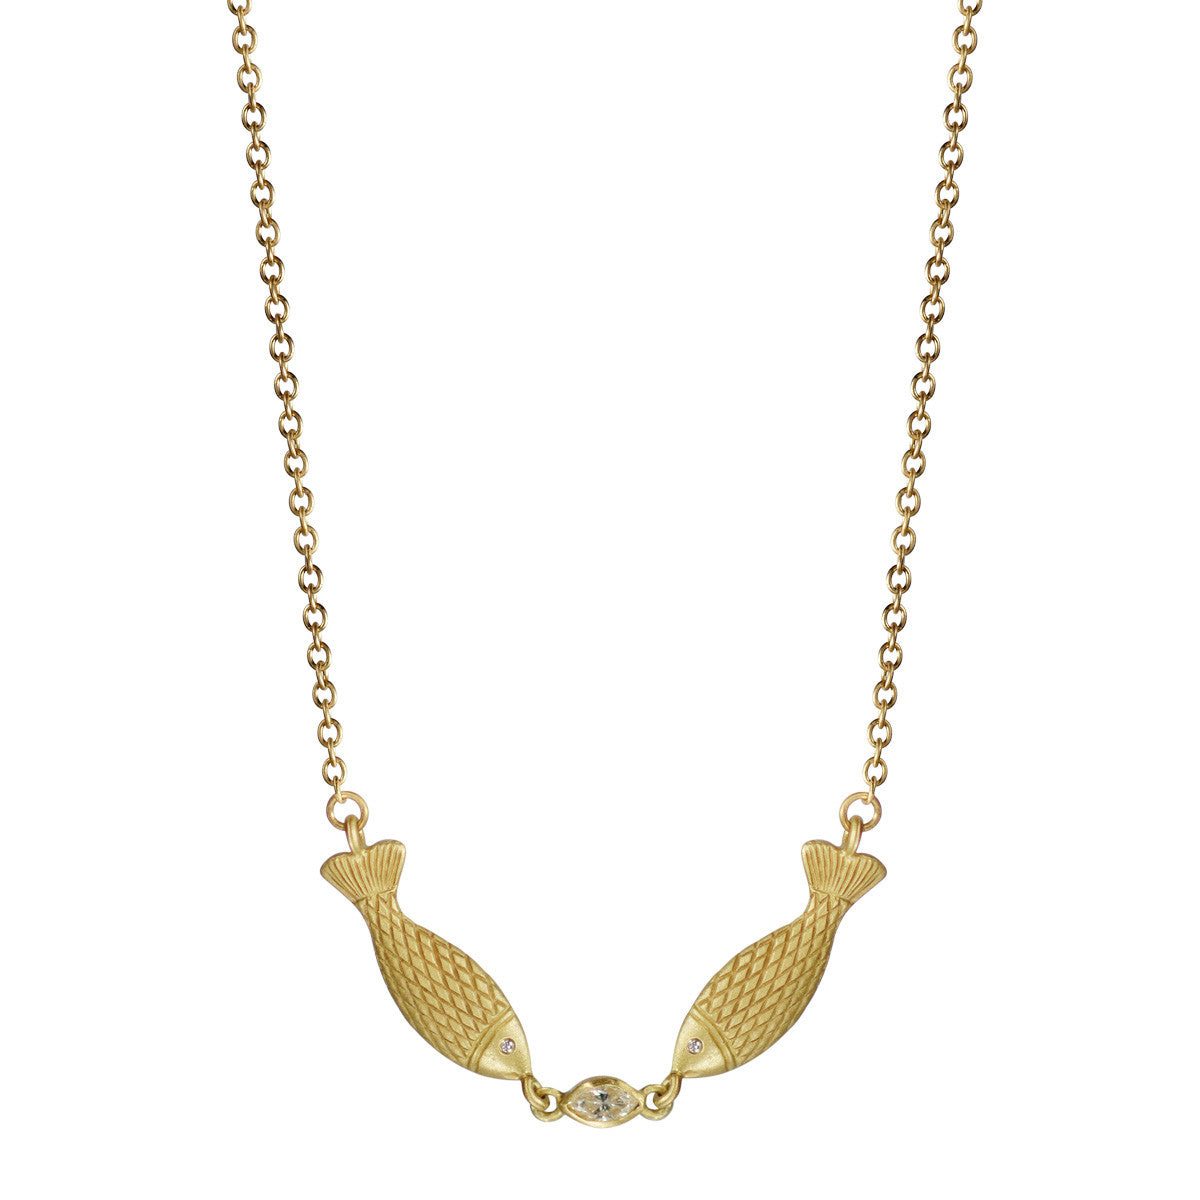 18K Gold Kissing Fish Chain with Marquise Diamond